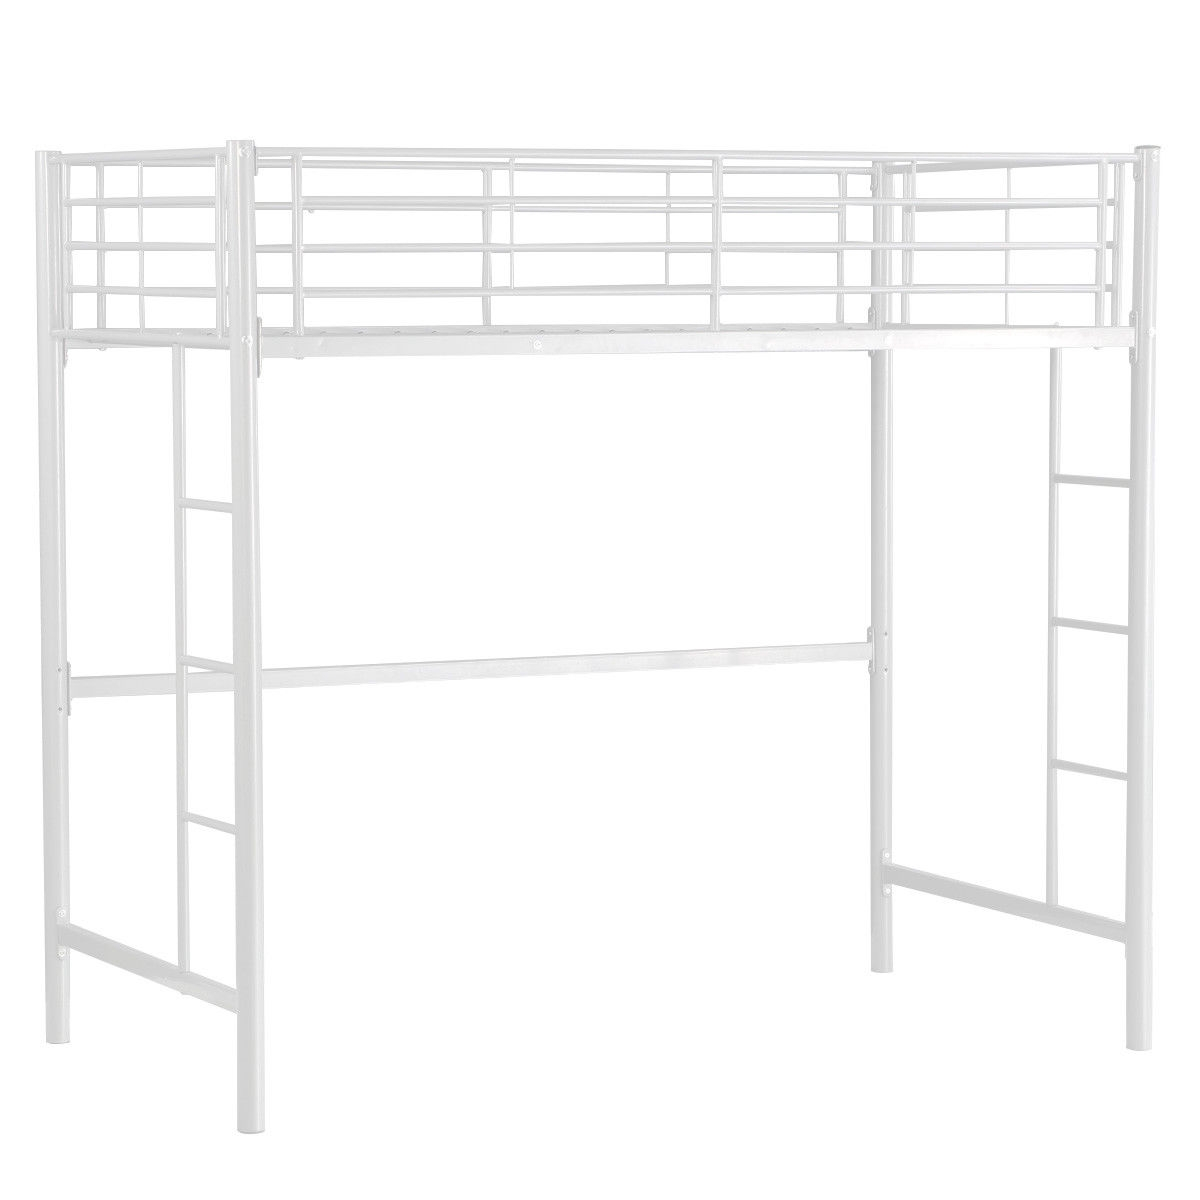 Twin Loft Bed Metal Bunk Ladder Beds Bedroom Dorm